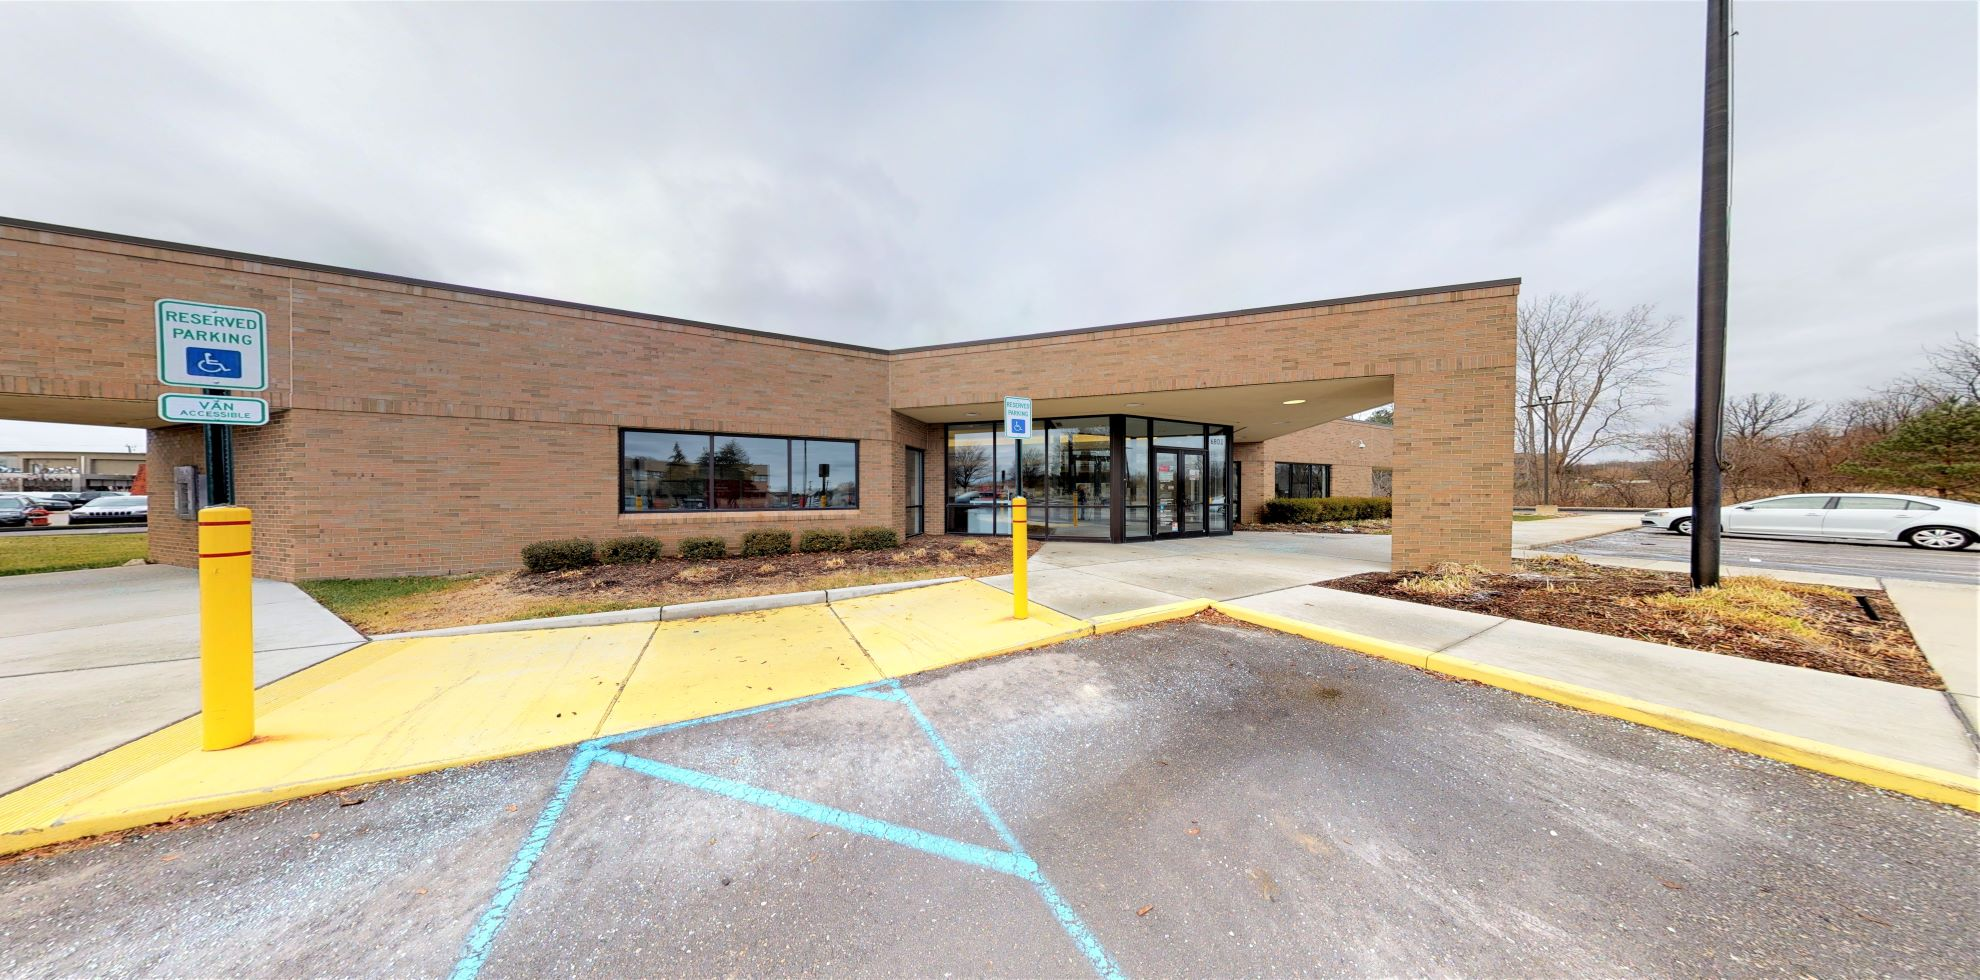 Bank of America financial center with drive-thru ATM | 6800 N Rochester Rd, Rochester Hills, MI 48306